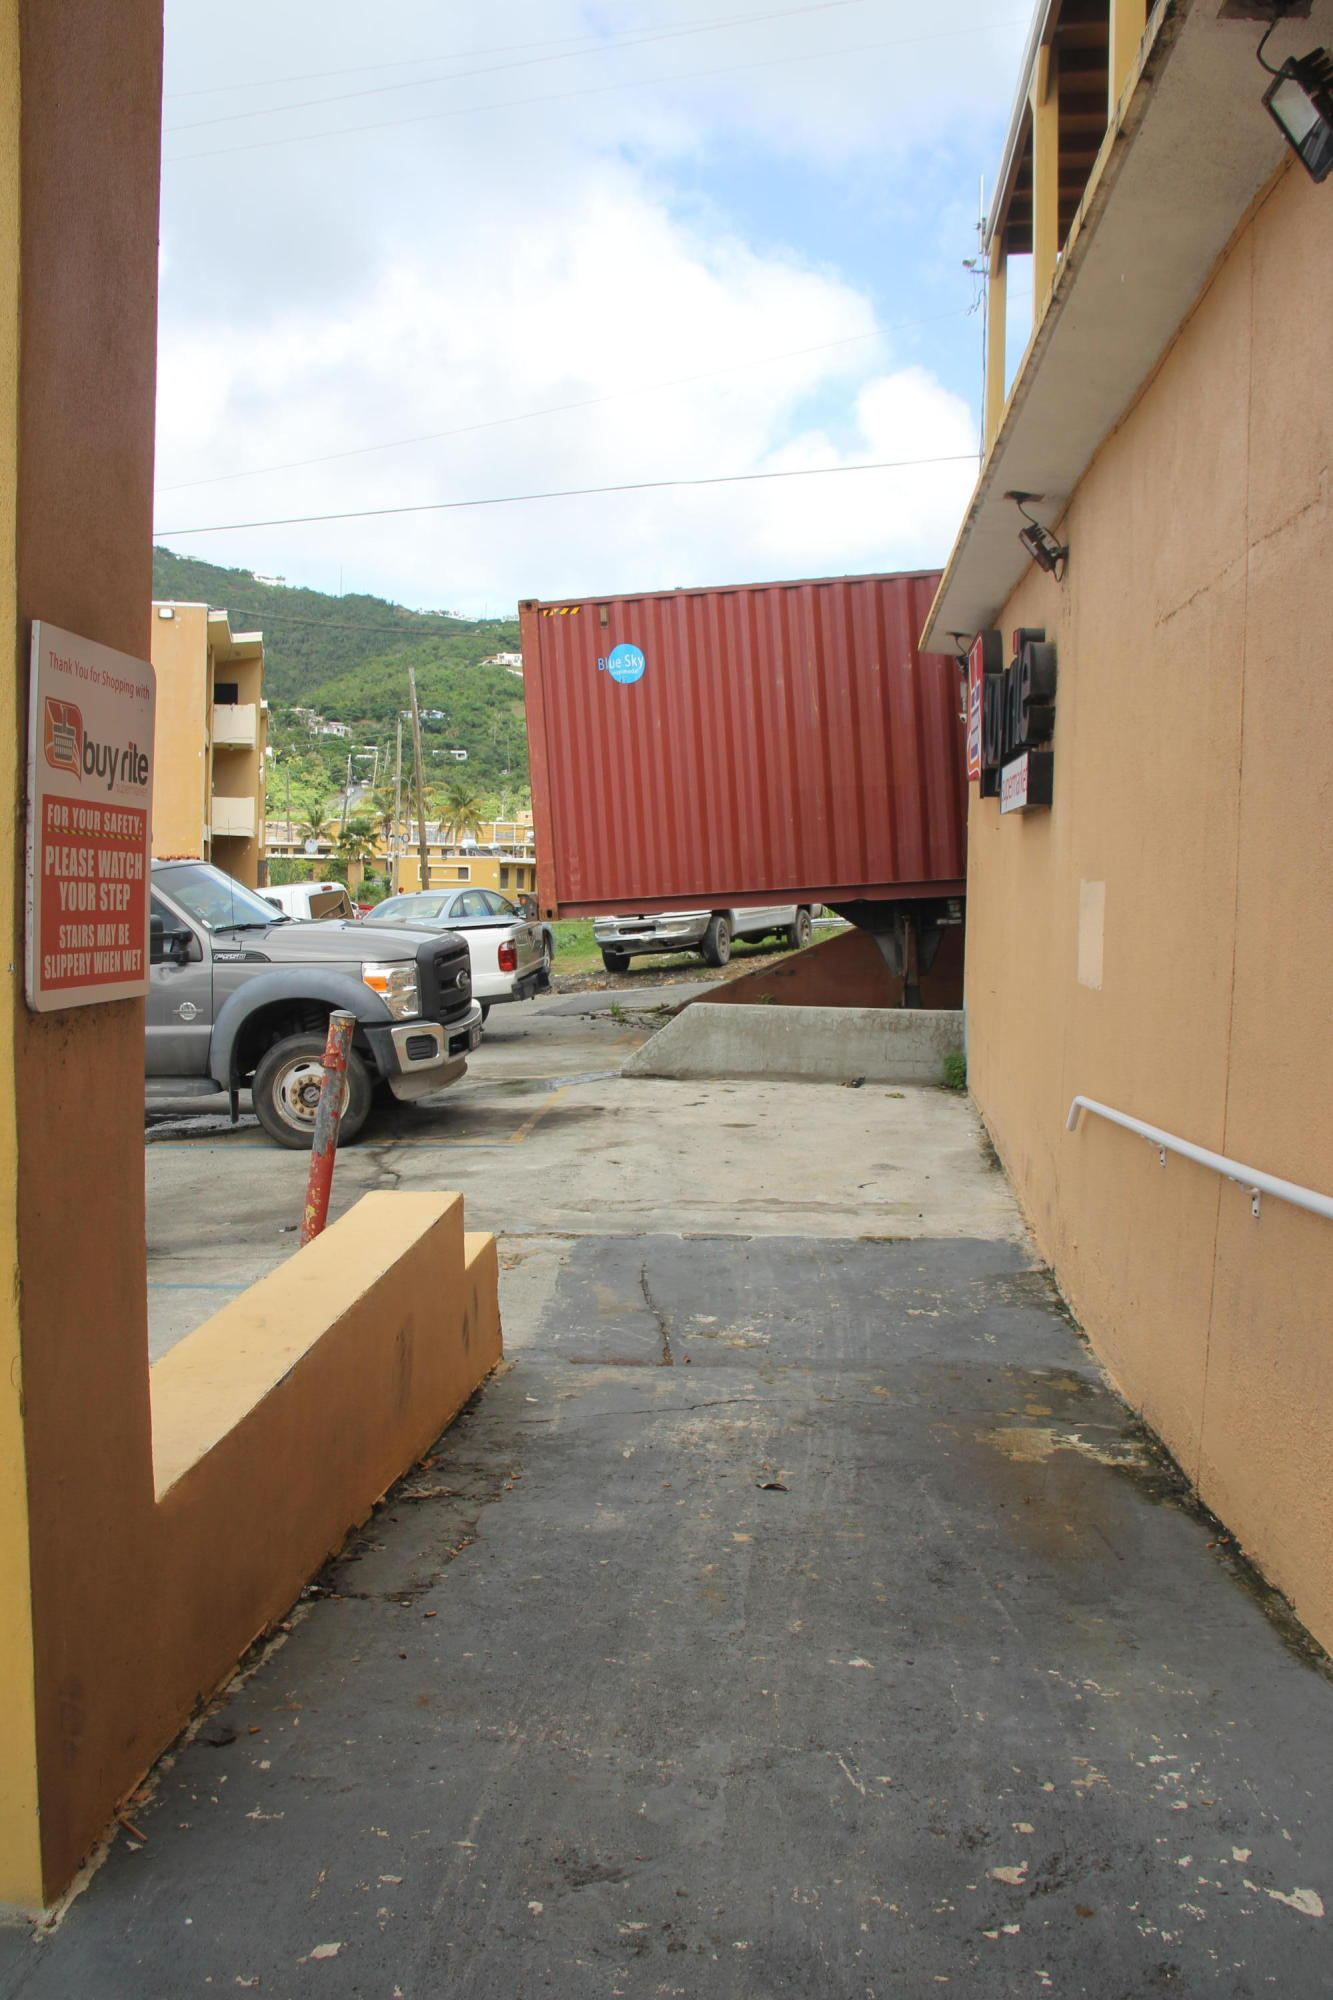 Additional photo for property listing at 4Aa-11 Thomas NEW 4Aa-11 Thomas NEW St Thomas, Virgin Islands 00802 United States Virgin Islands